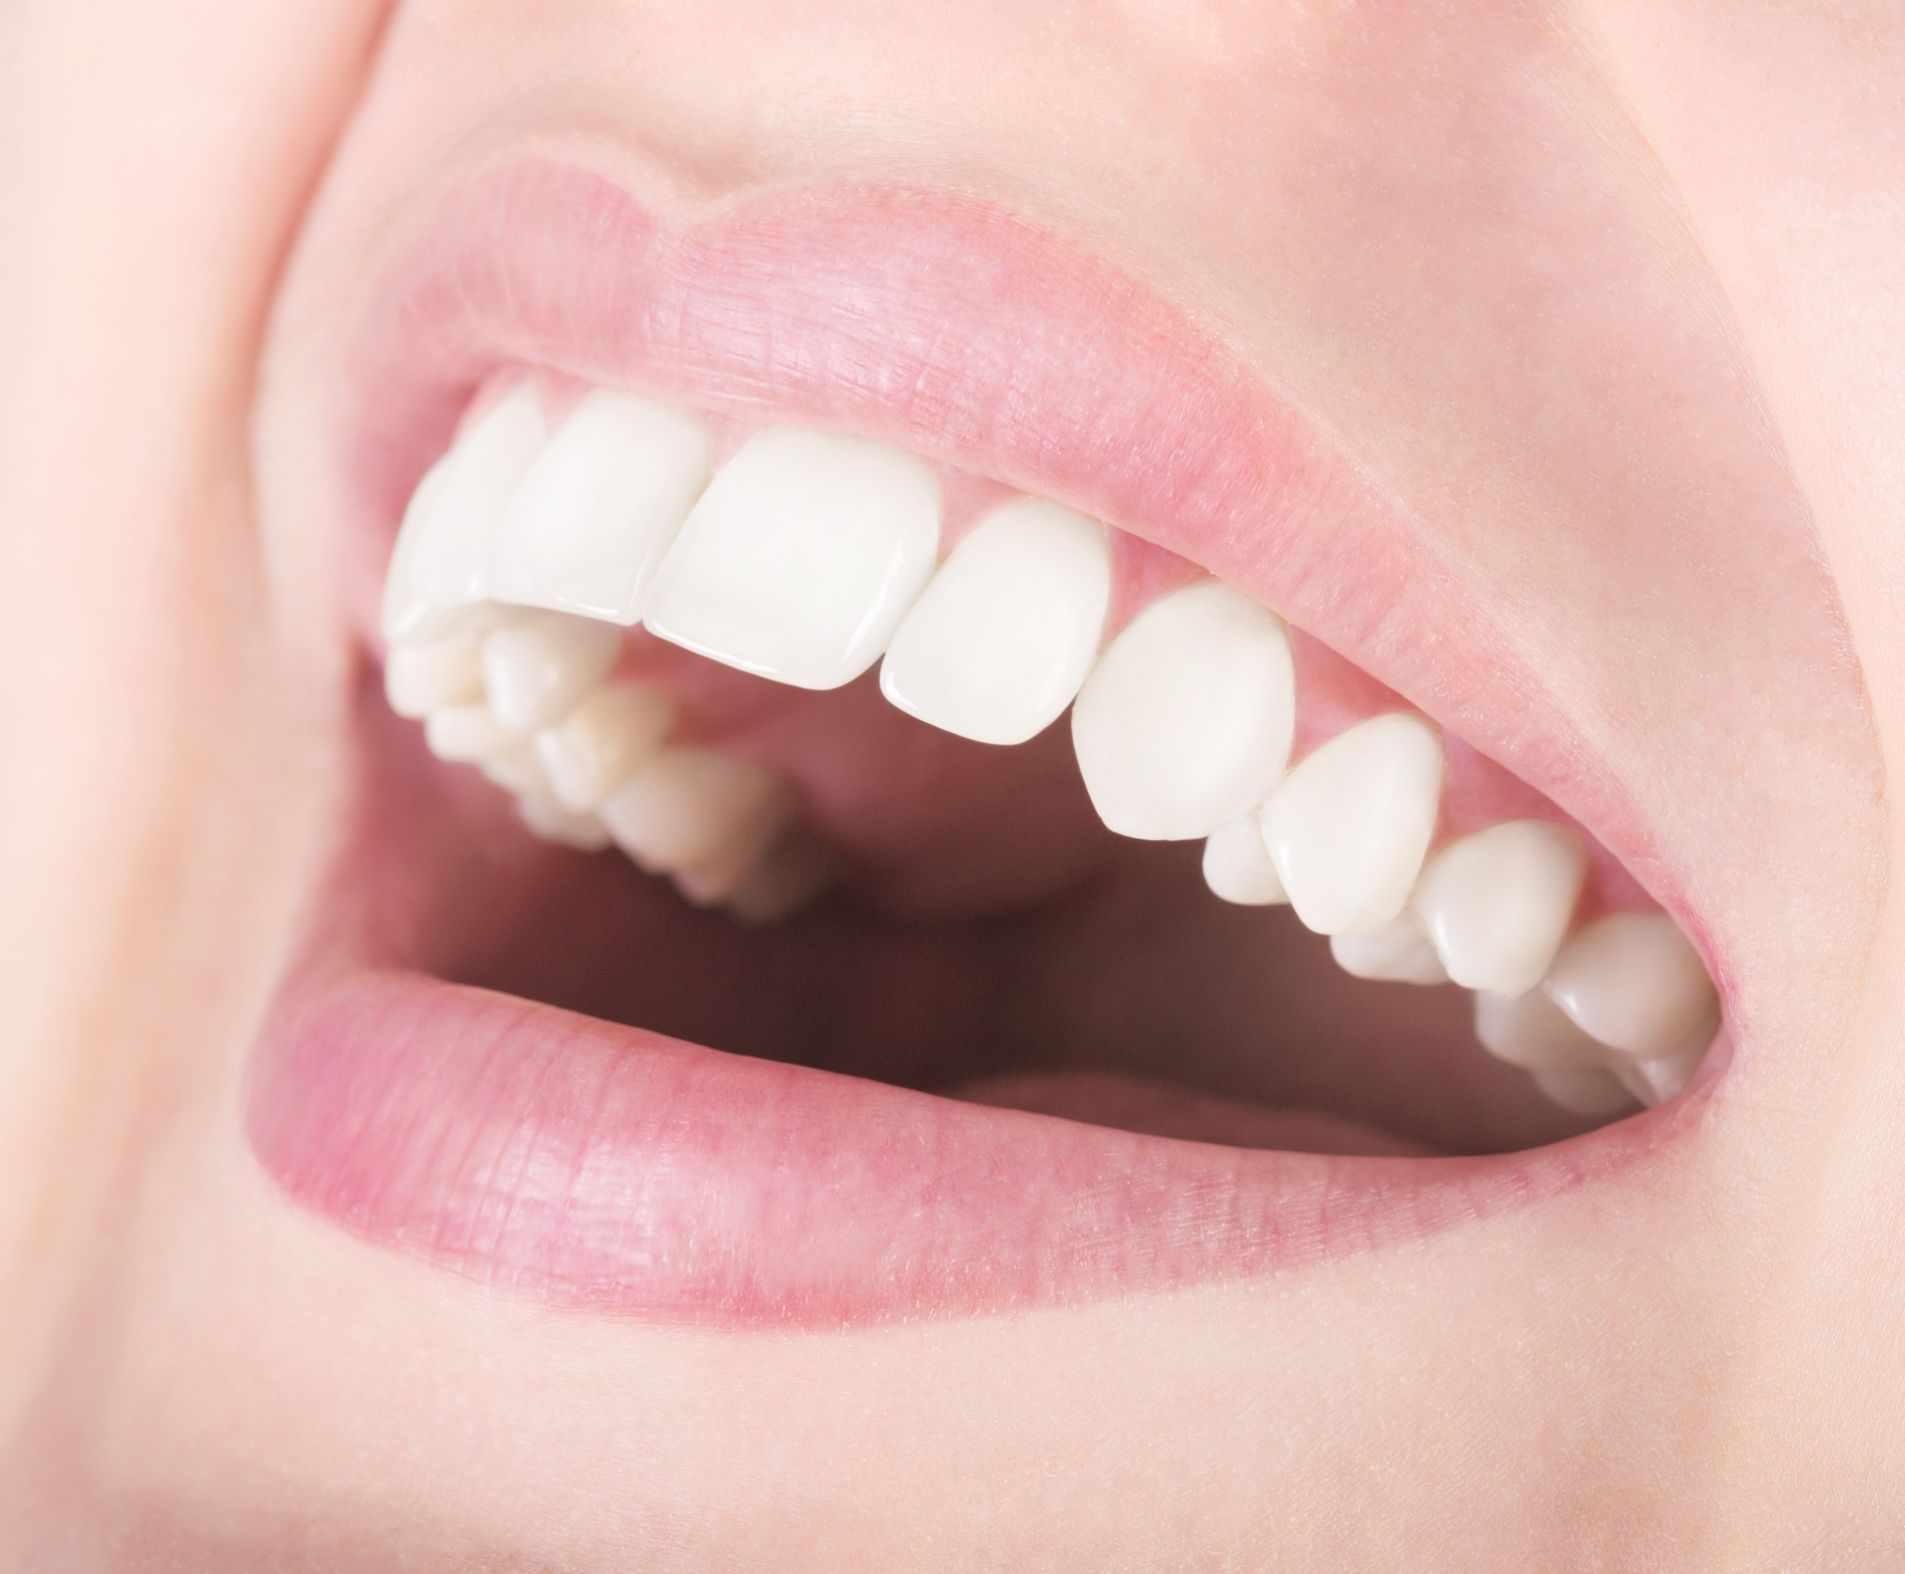 Closeup of smiling female mouth shows white and attractive teeth